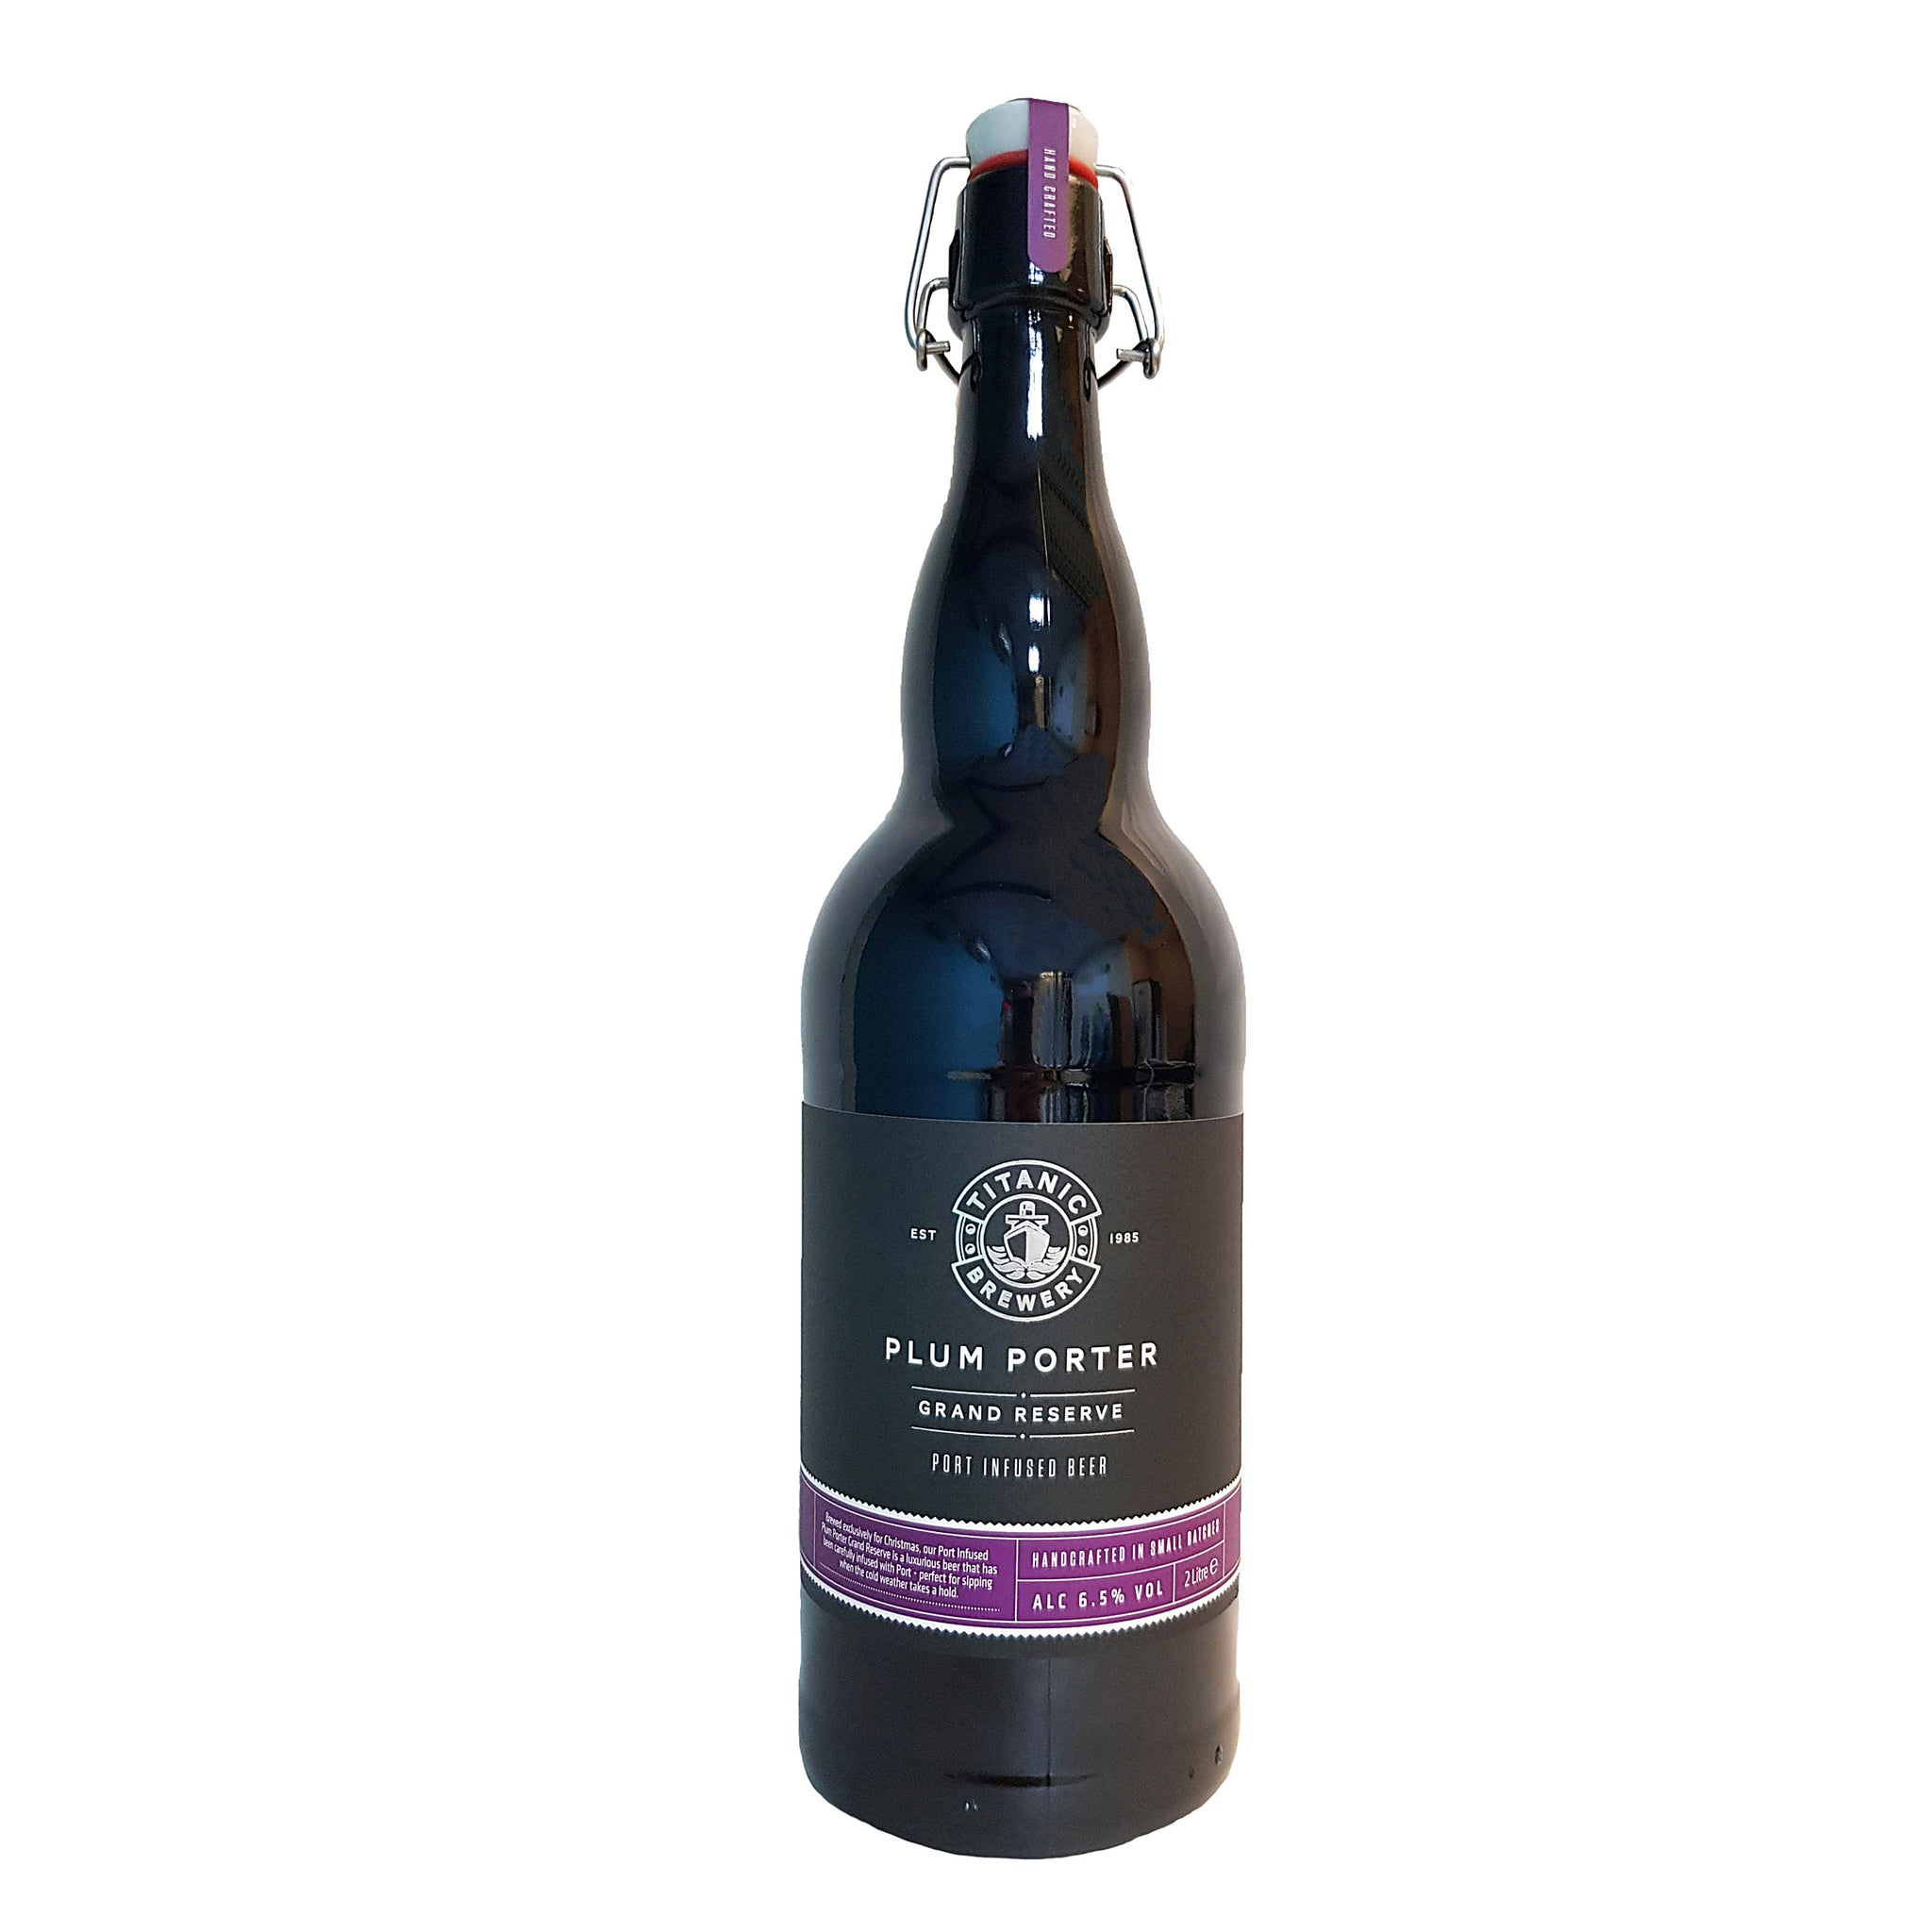 Titanic Brewery Plum Porter Grand Reserve Port Infused Beer 2 Litre Bottle